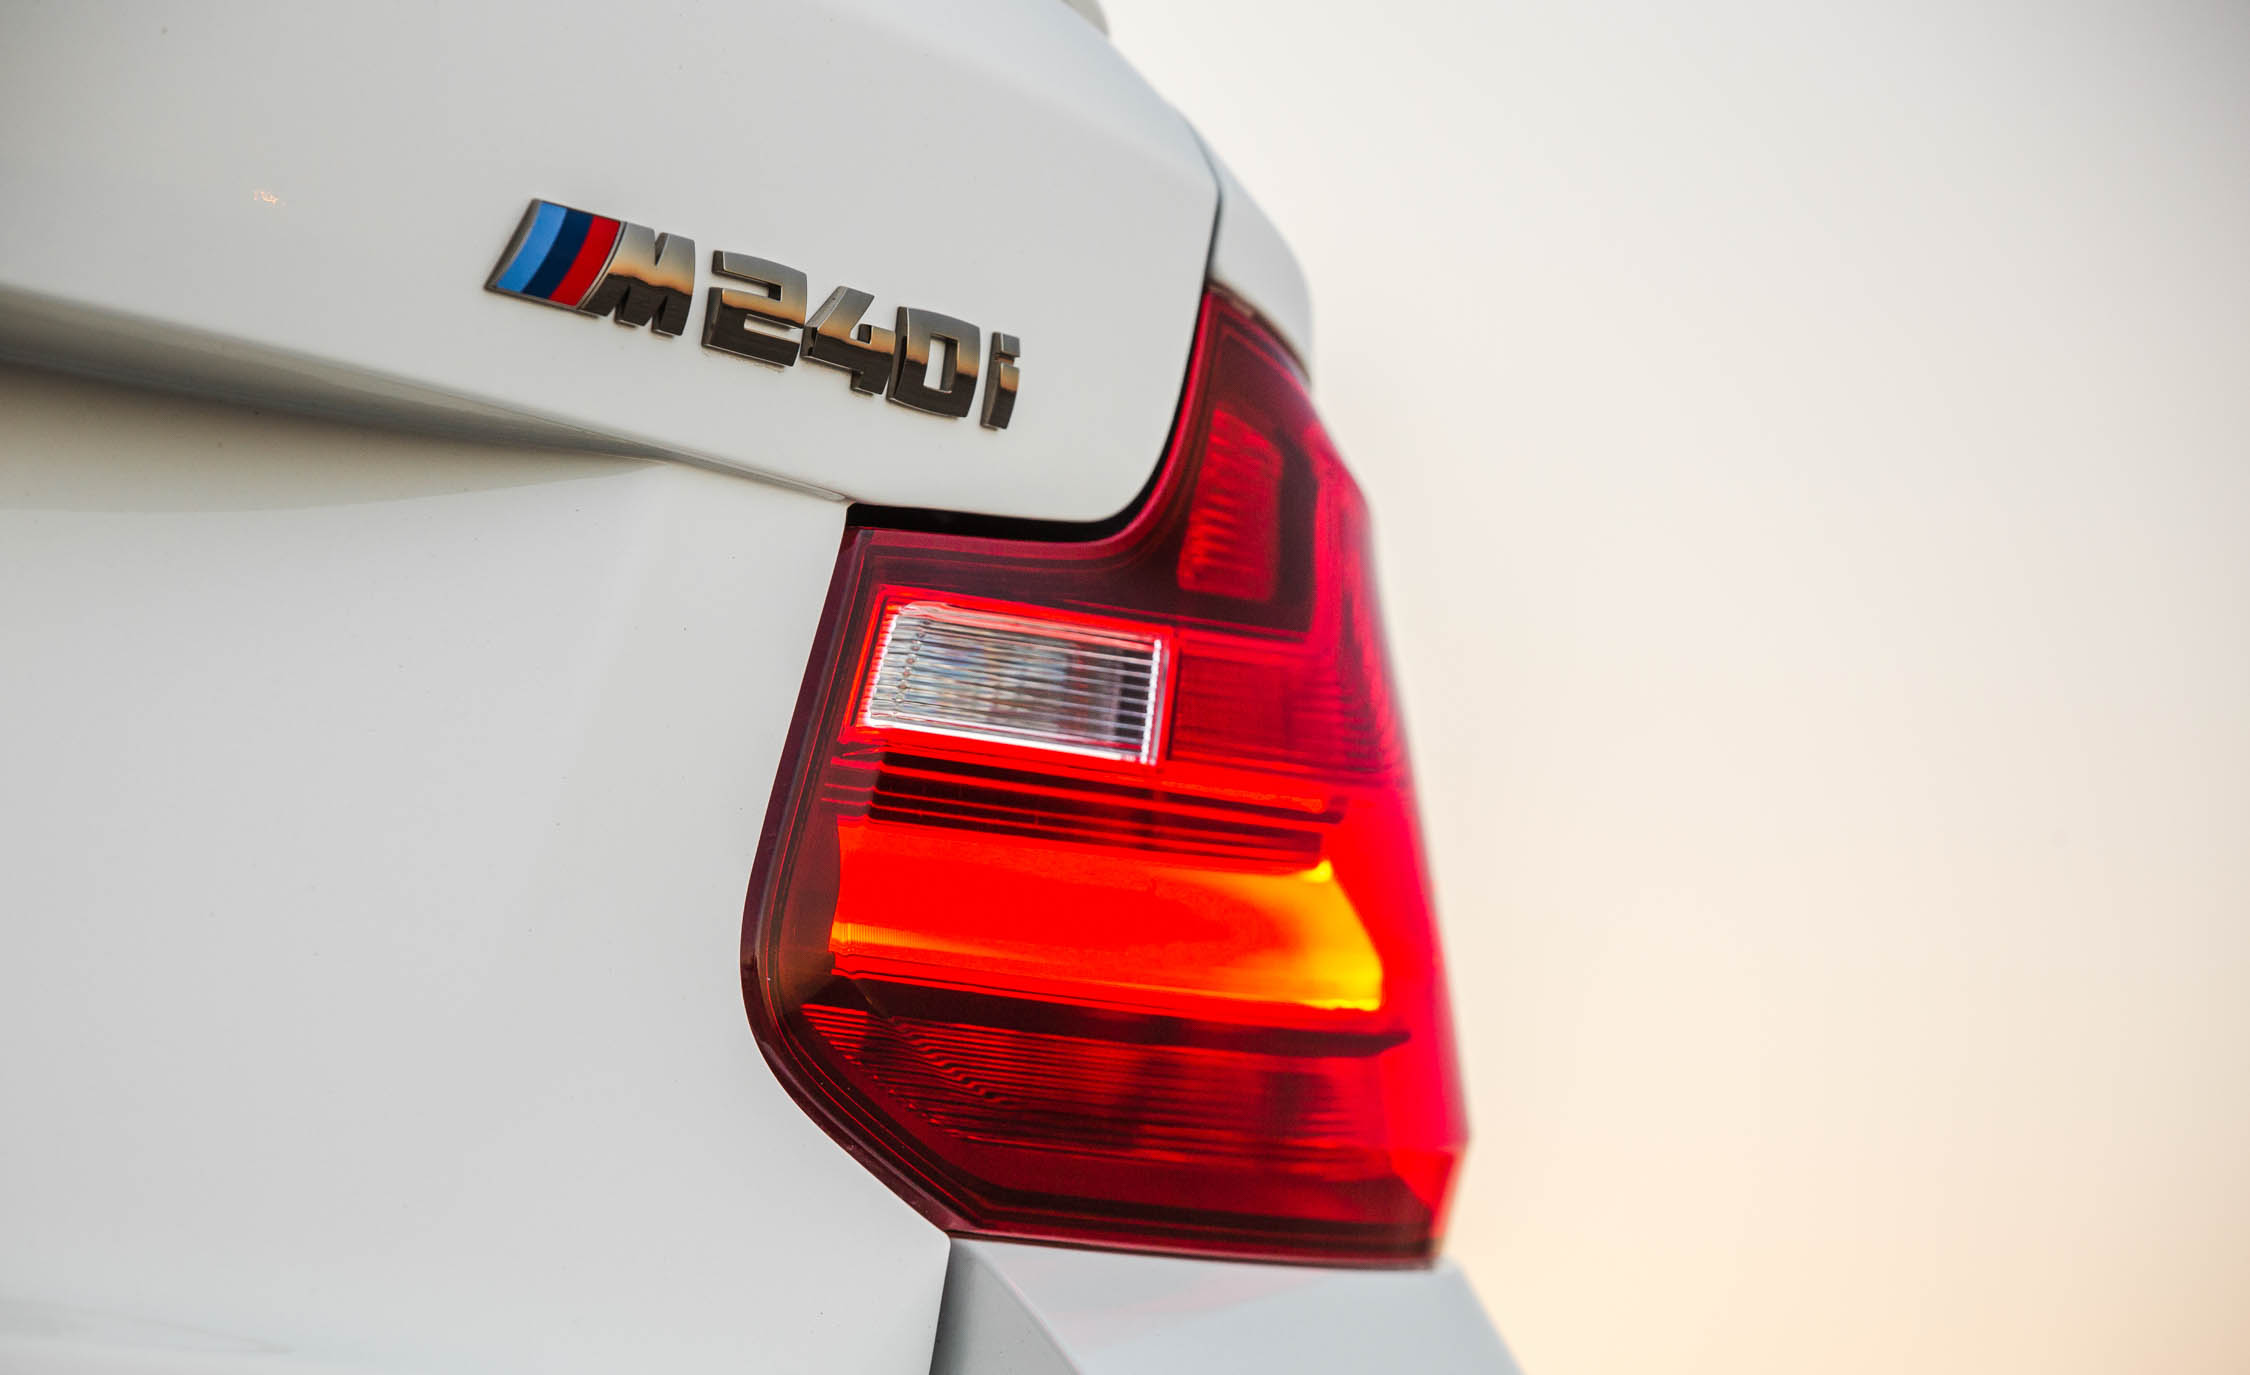 2017 BMW M240i Coupe Automatic Exterior View Rear Badge Emblem (Photo 13 of 36)